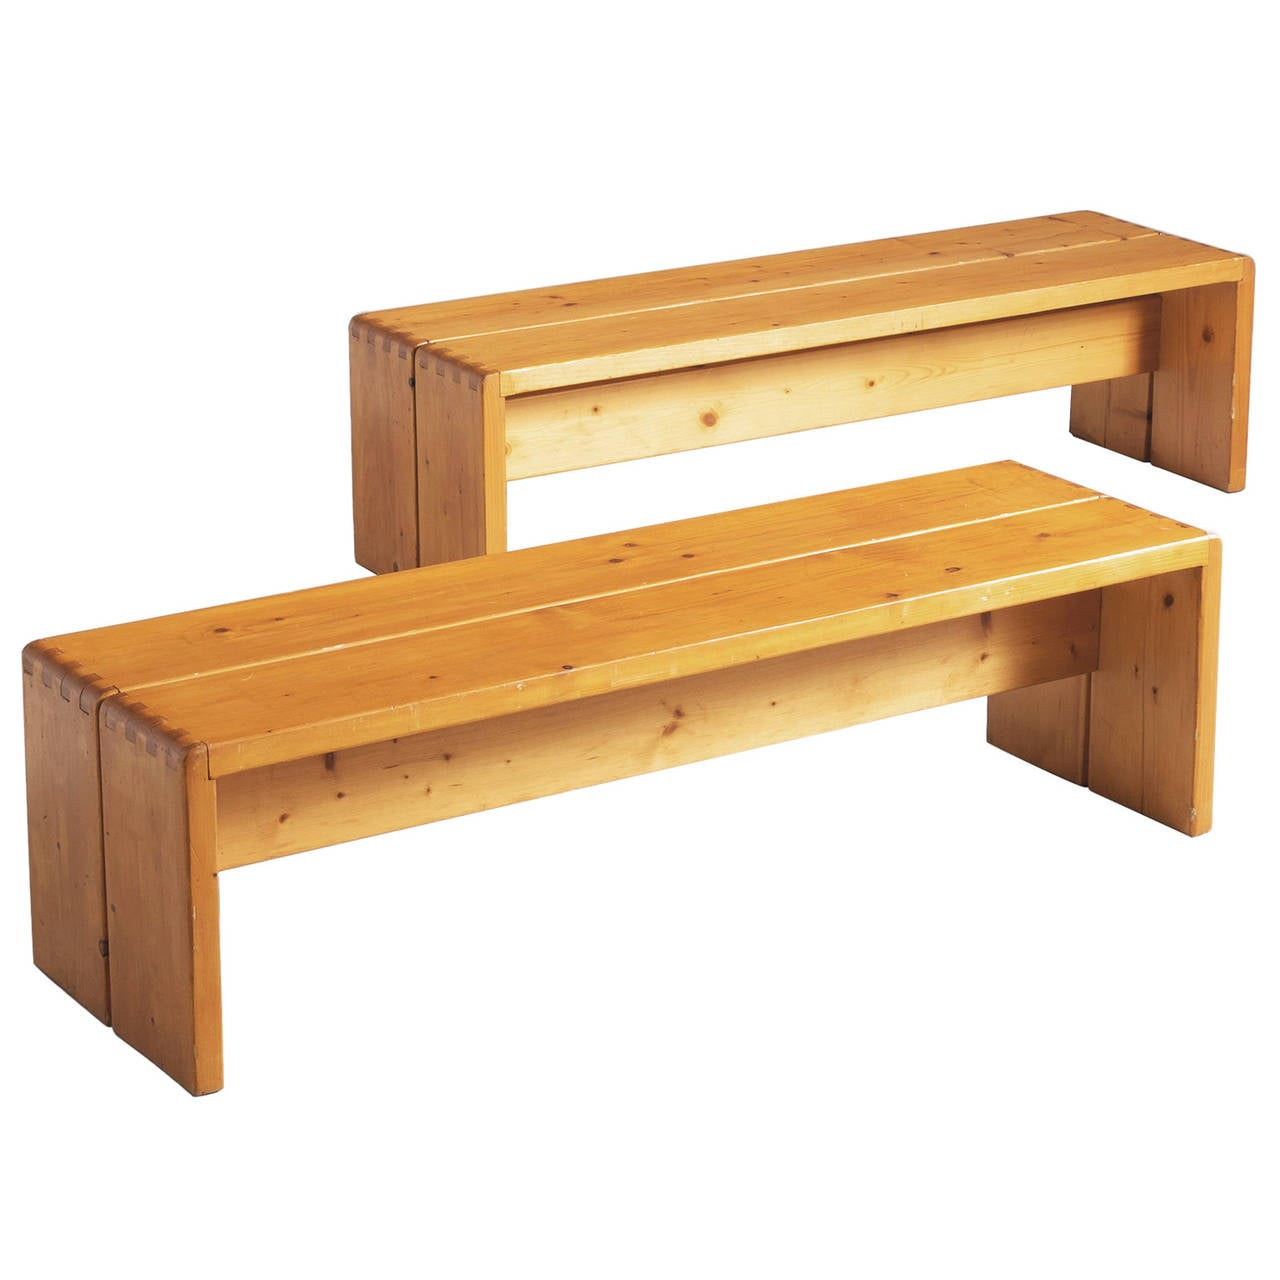 Charlotte Perriand Benches In Solid Pine For Sale At 1stdibs